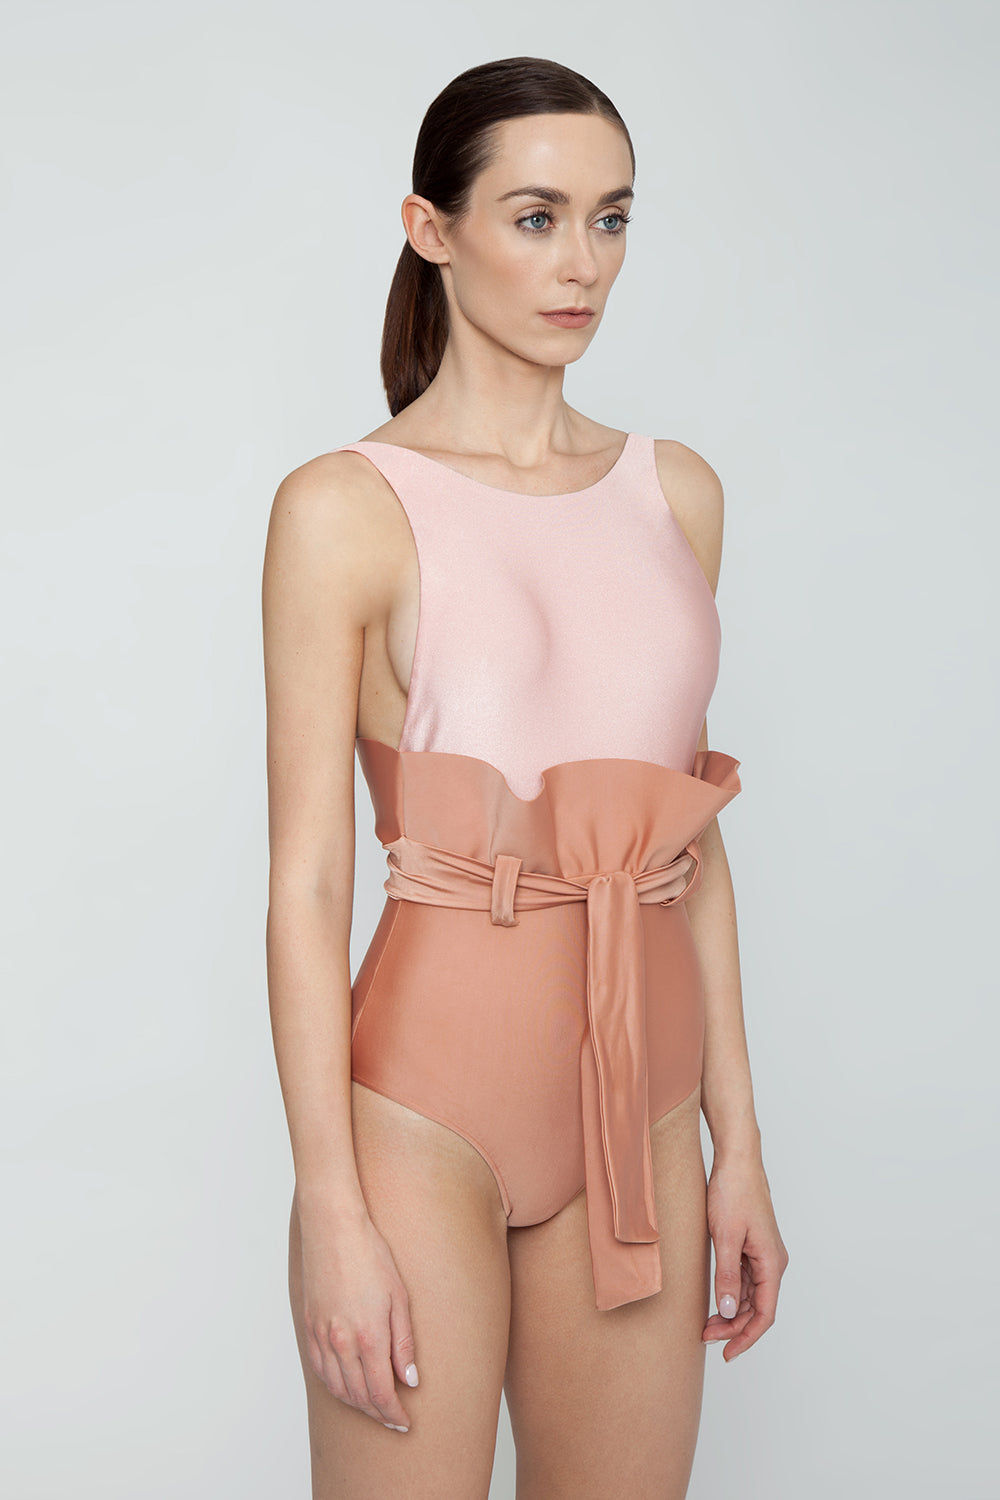 ADRIANA DEGREAS Clochard Ruffle Waist Tie One Piece Swimsuit - Bicolor Light Pink/Rose Pink One Piece | Bicolor Light Pink/Rose Pink| Adriana Degreas Bicolor Clochard One Piece Swimsuit - Light Pink/Rose Pink Features:  Slight scoop neckline Thick back straps Ruffle detail  Self tie waist  Moderate coverage  Side View